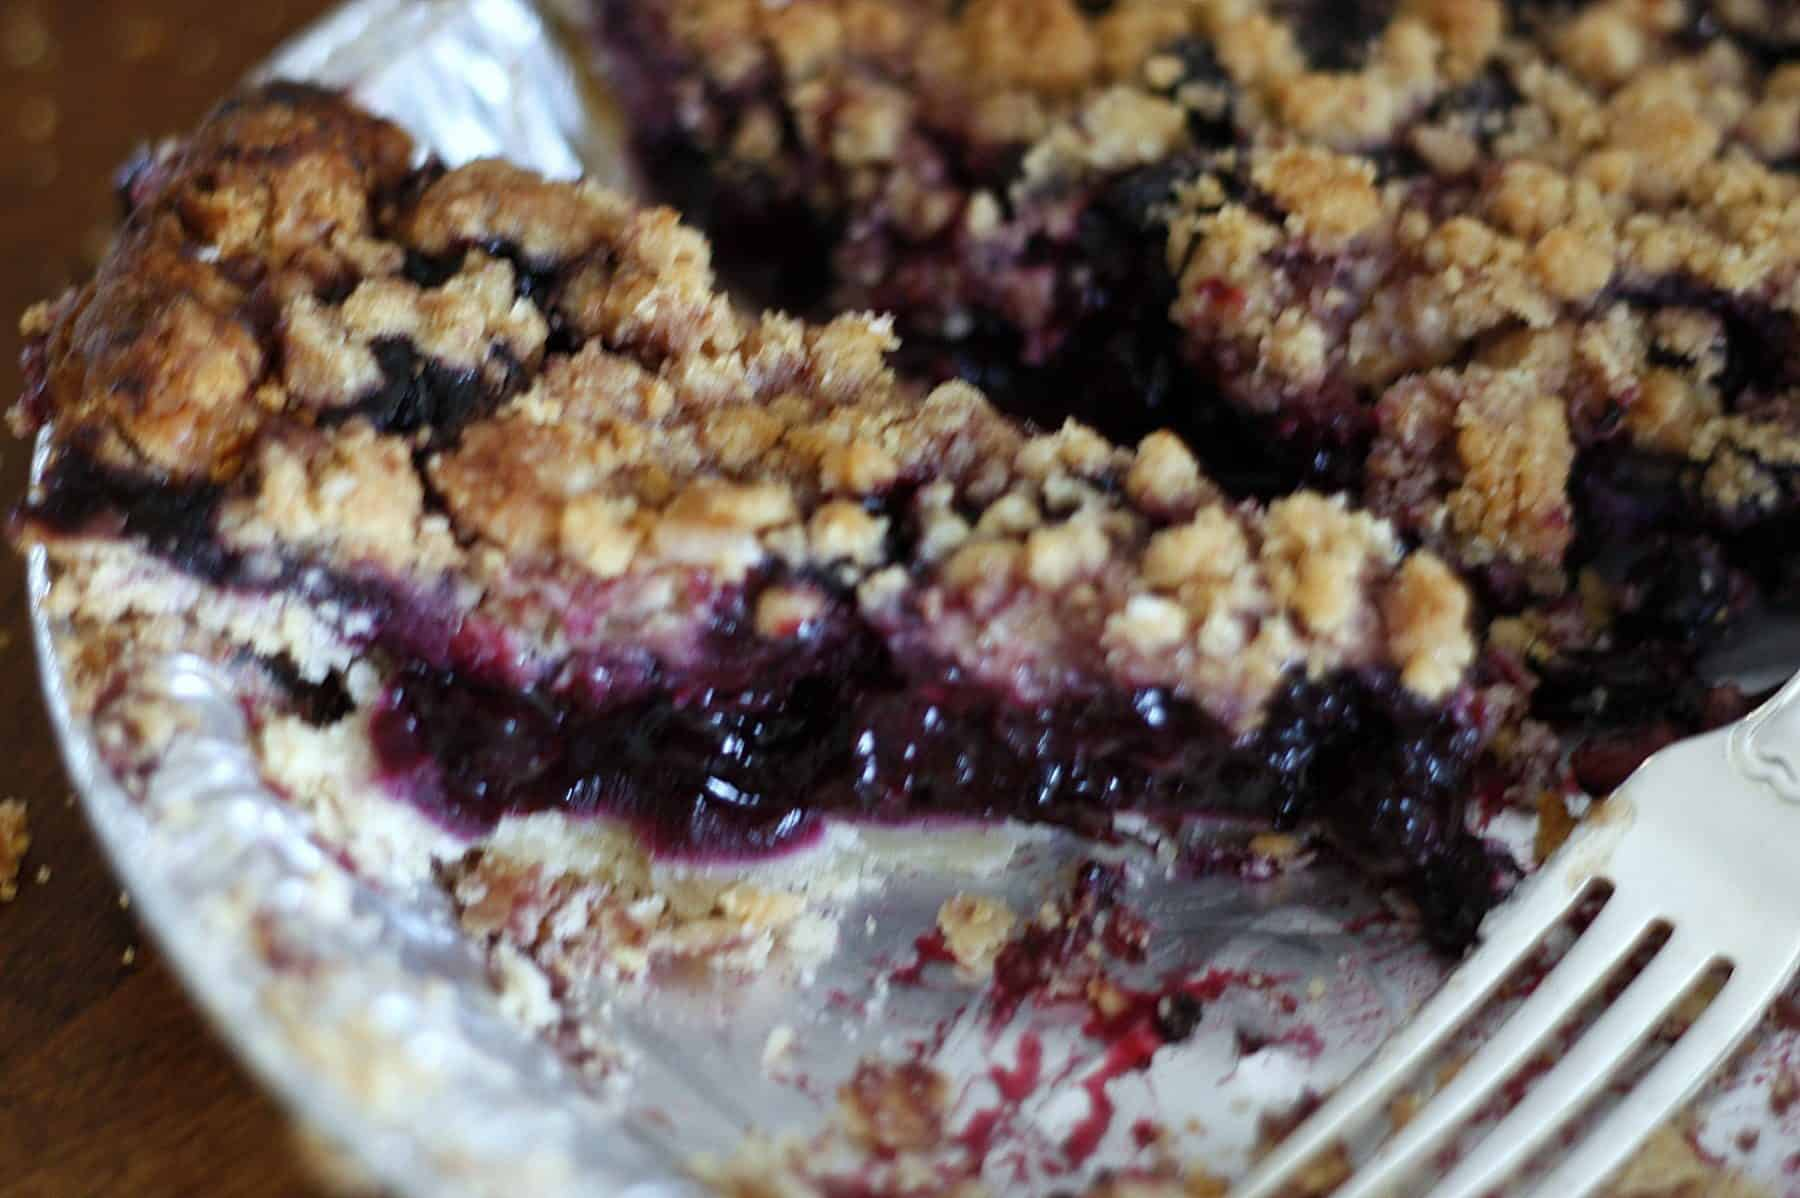 Blueberry Crumb Pie blueberry crumb pie recipes — dishmaps